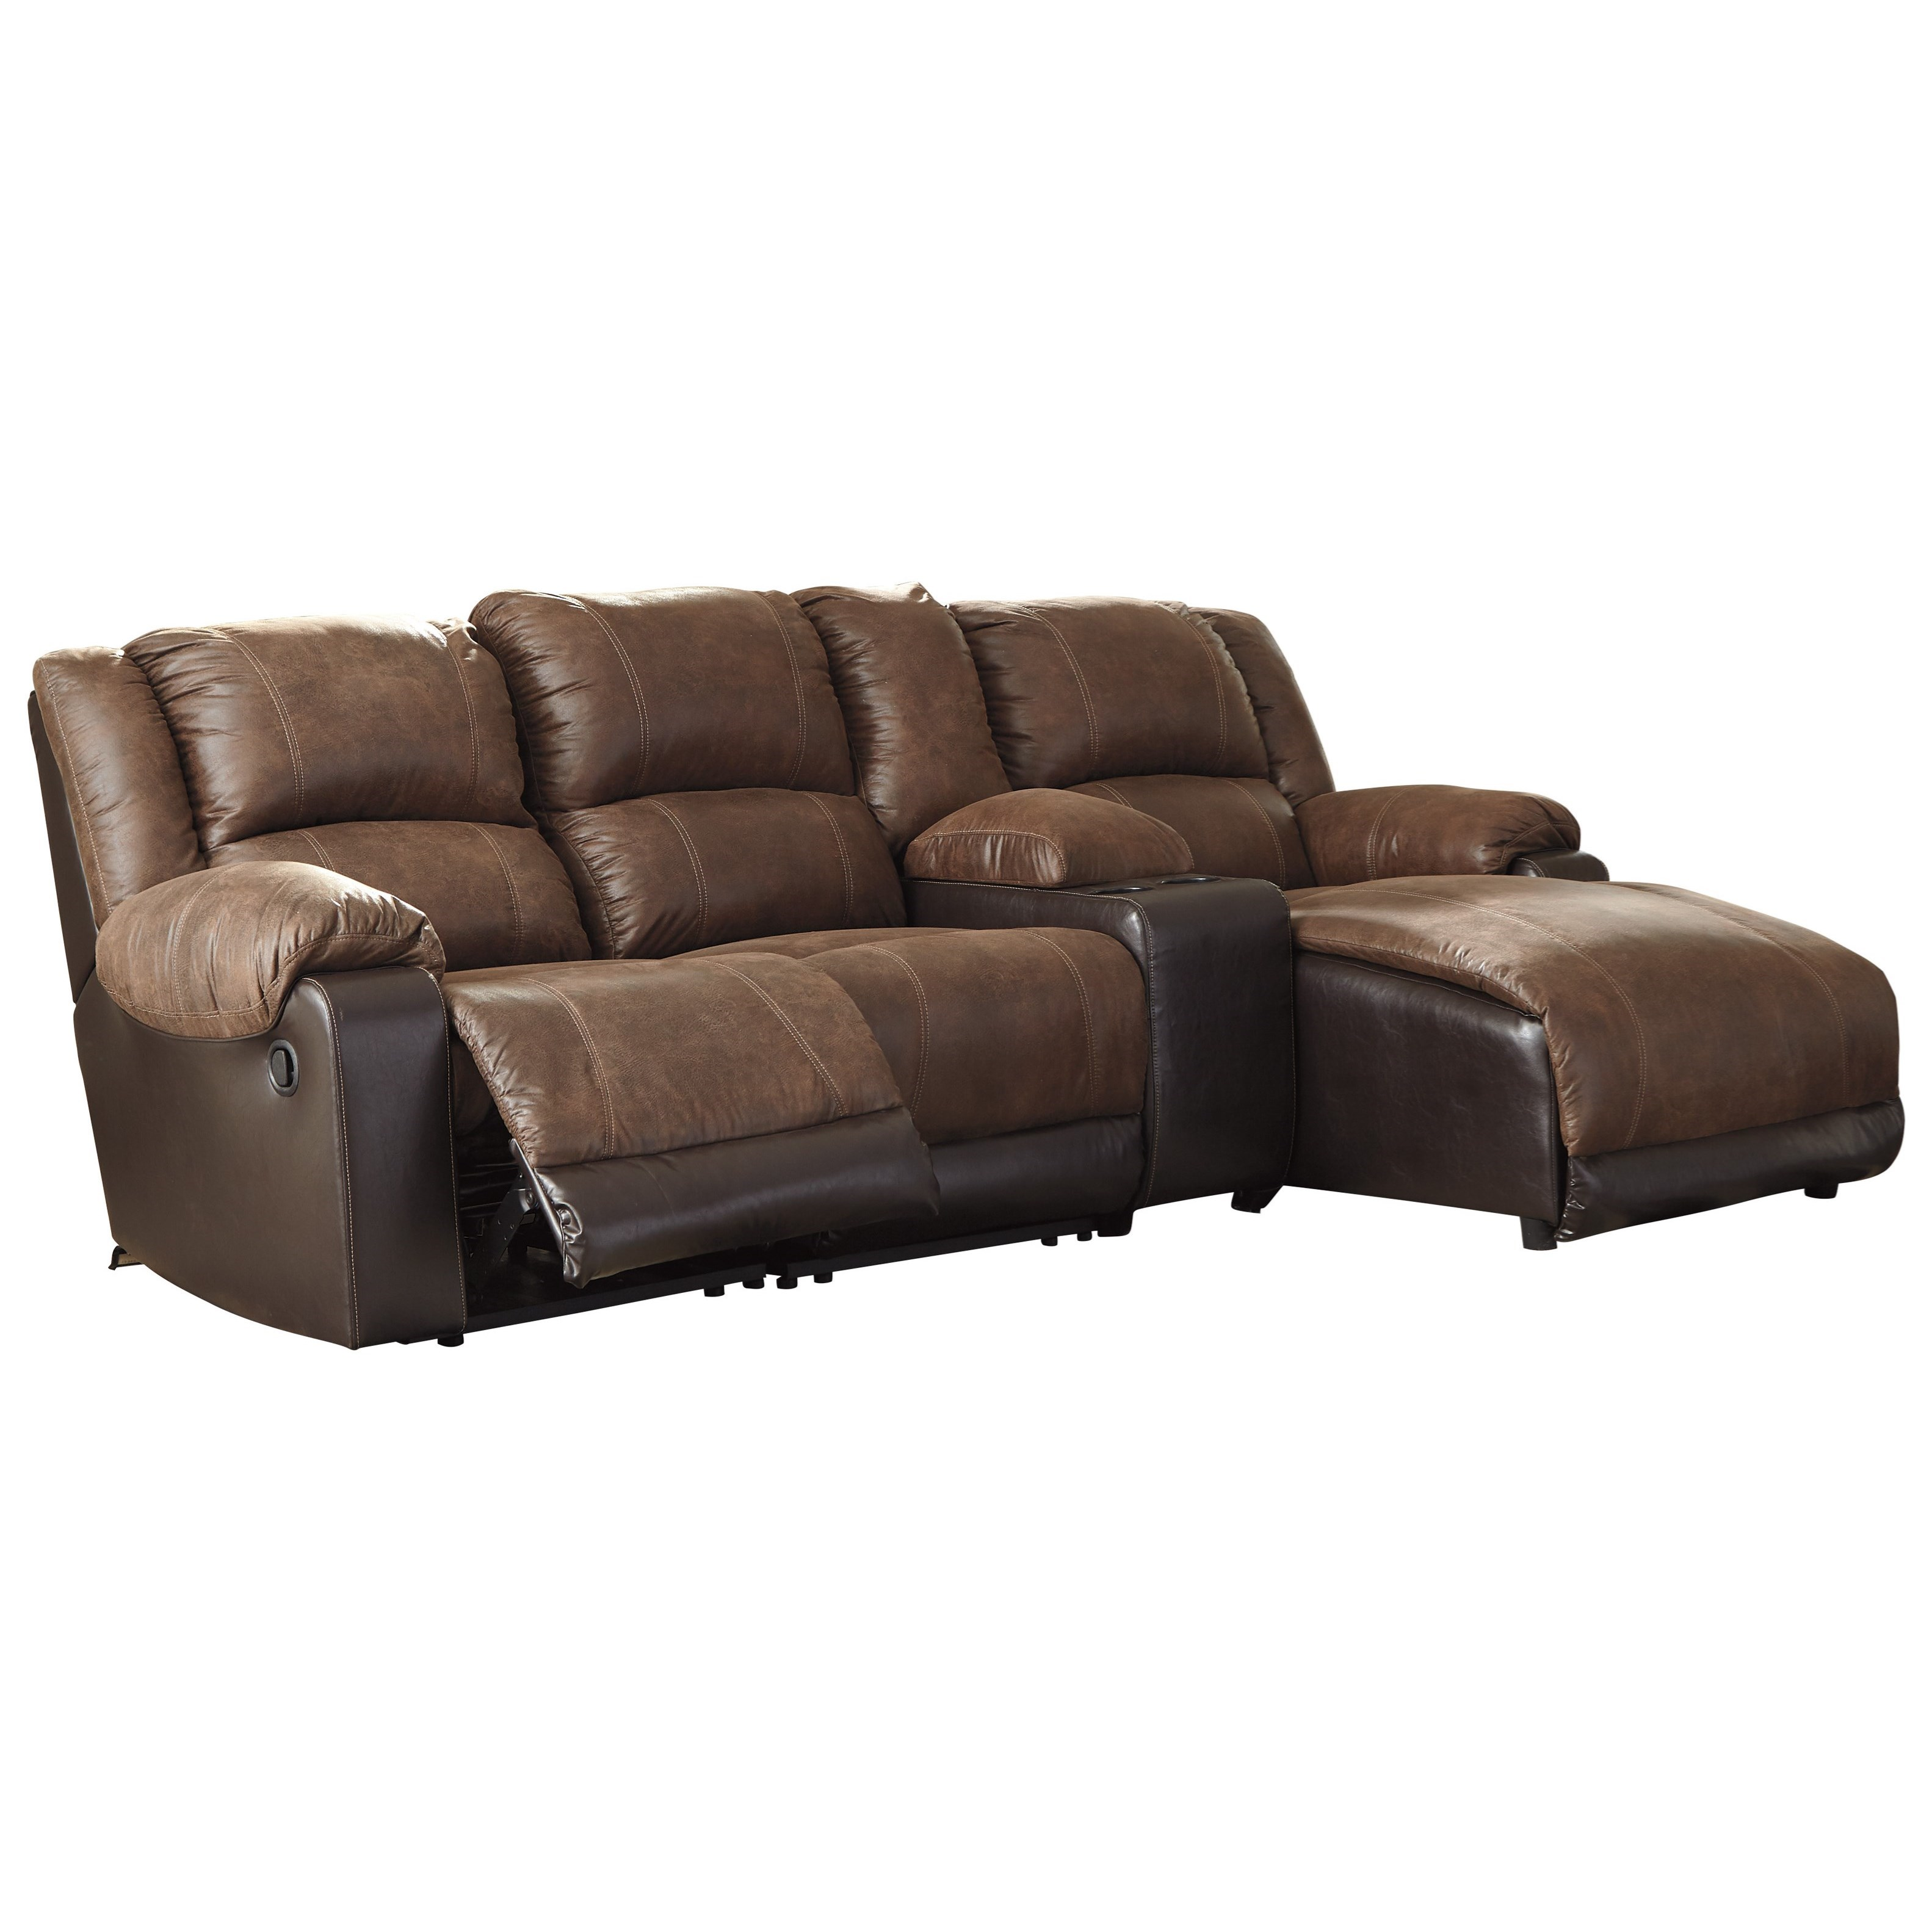 Signature Design By Ashley Nantahala Reclining Chaise Sofa